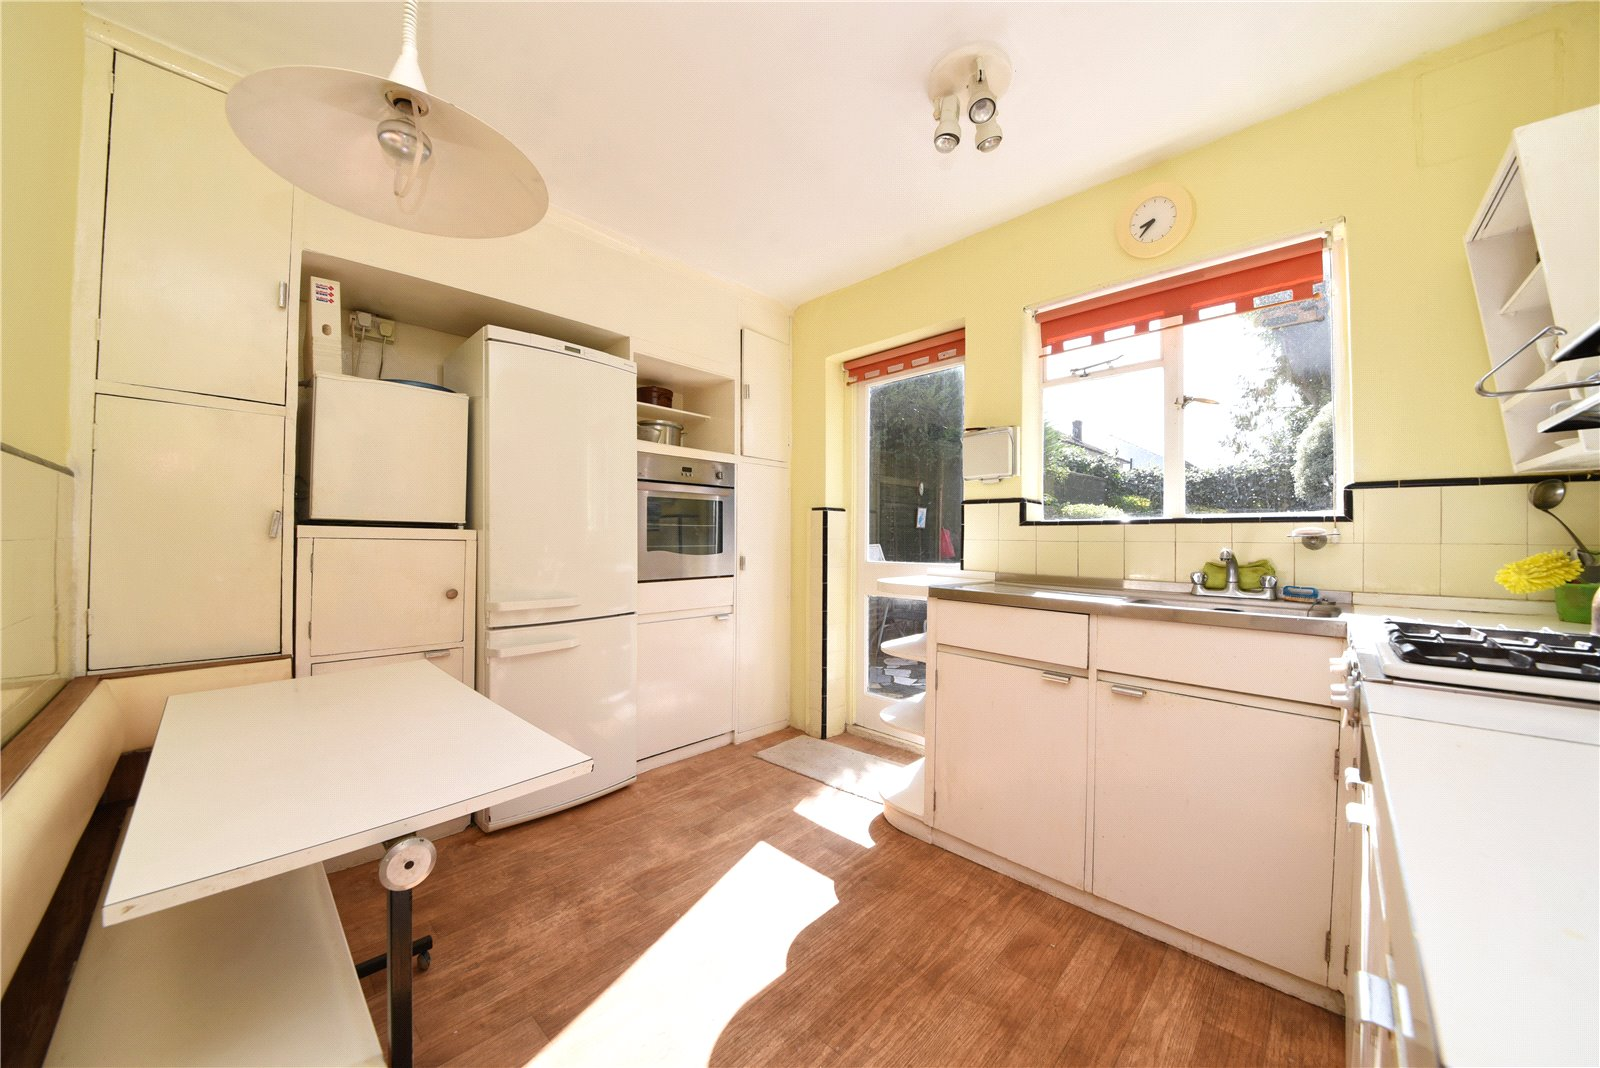 3 bed house for sale in West Finchley, N3 1PB  - Property Image 10